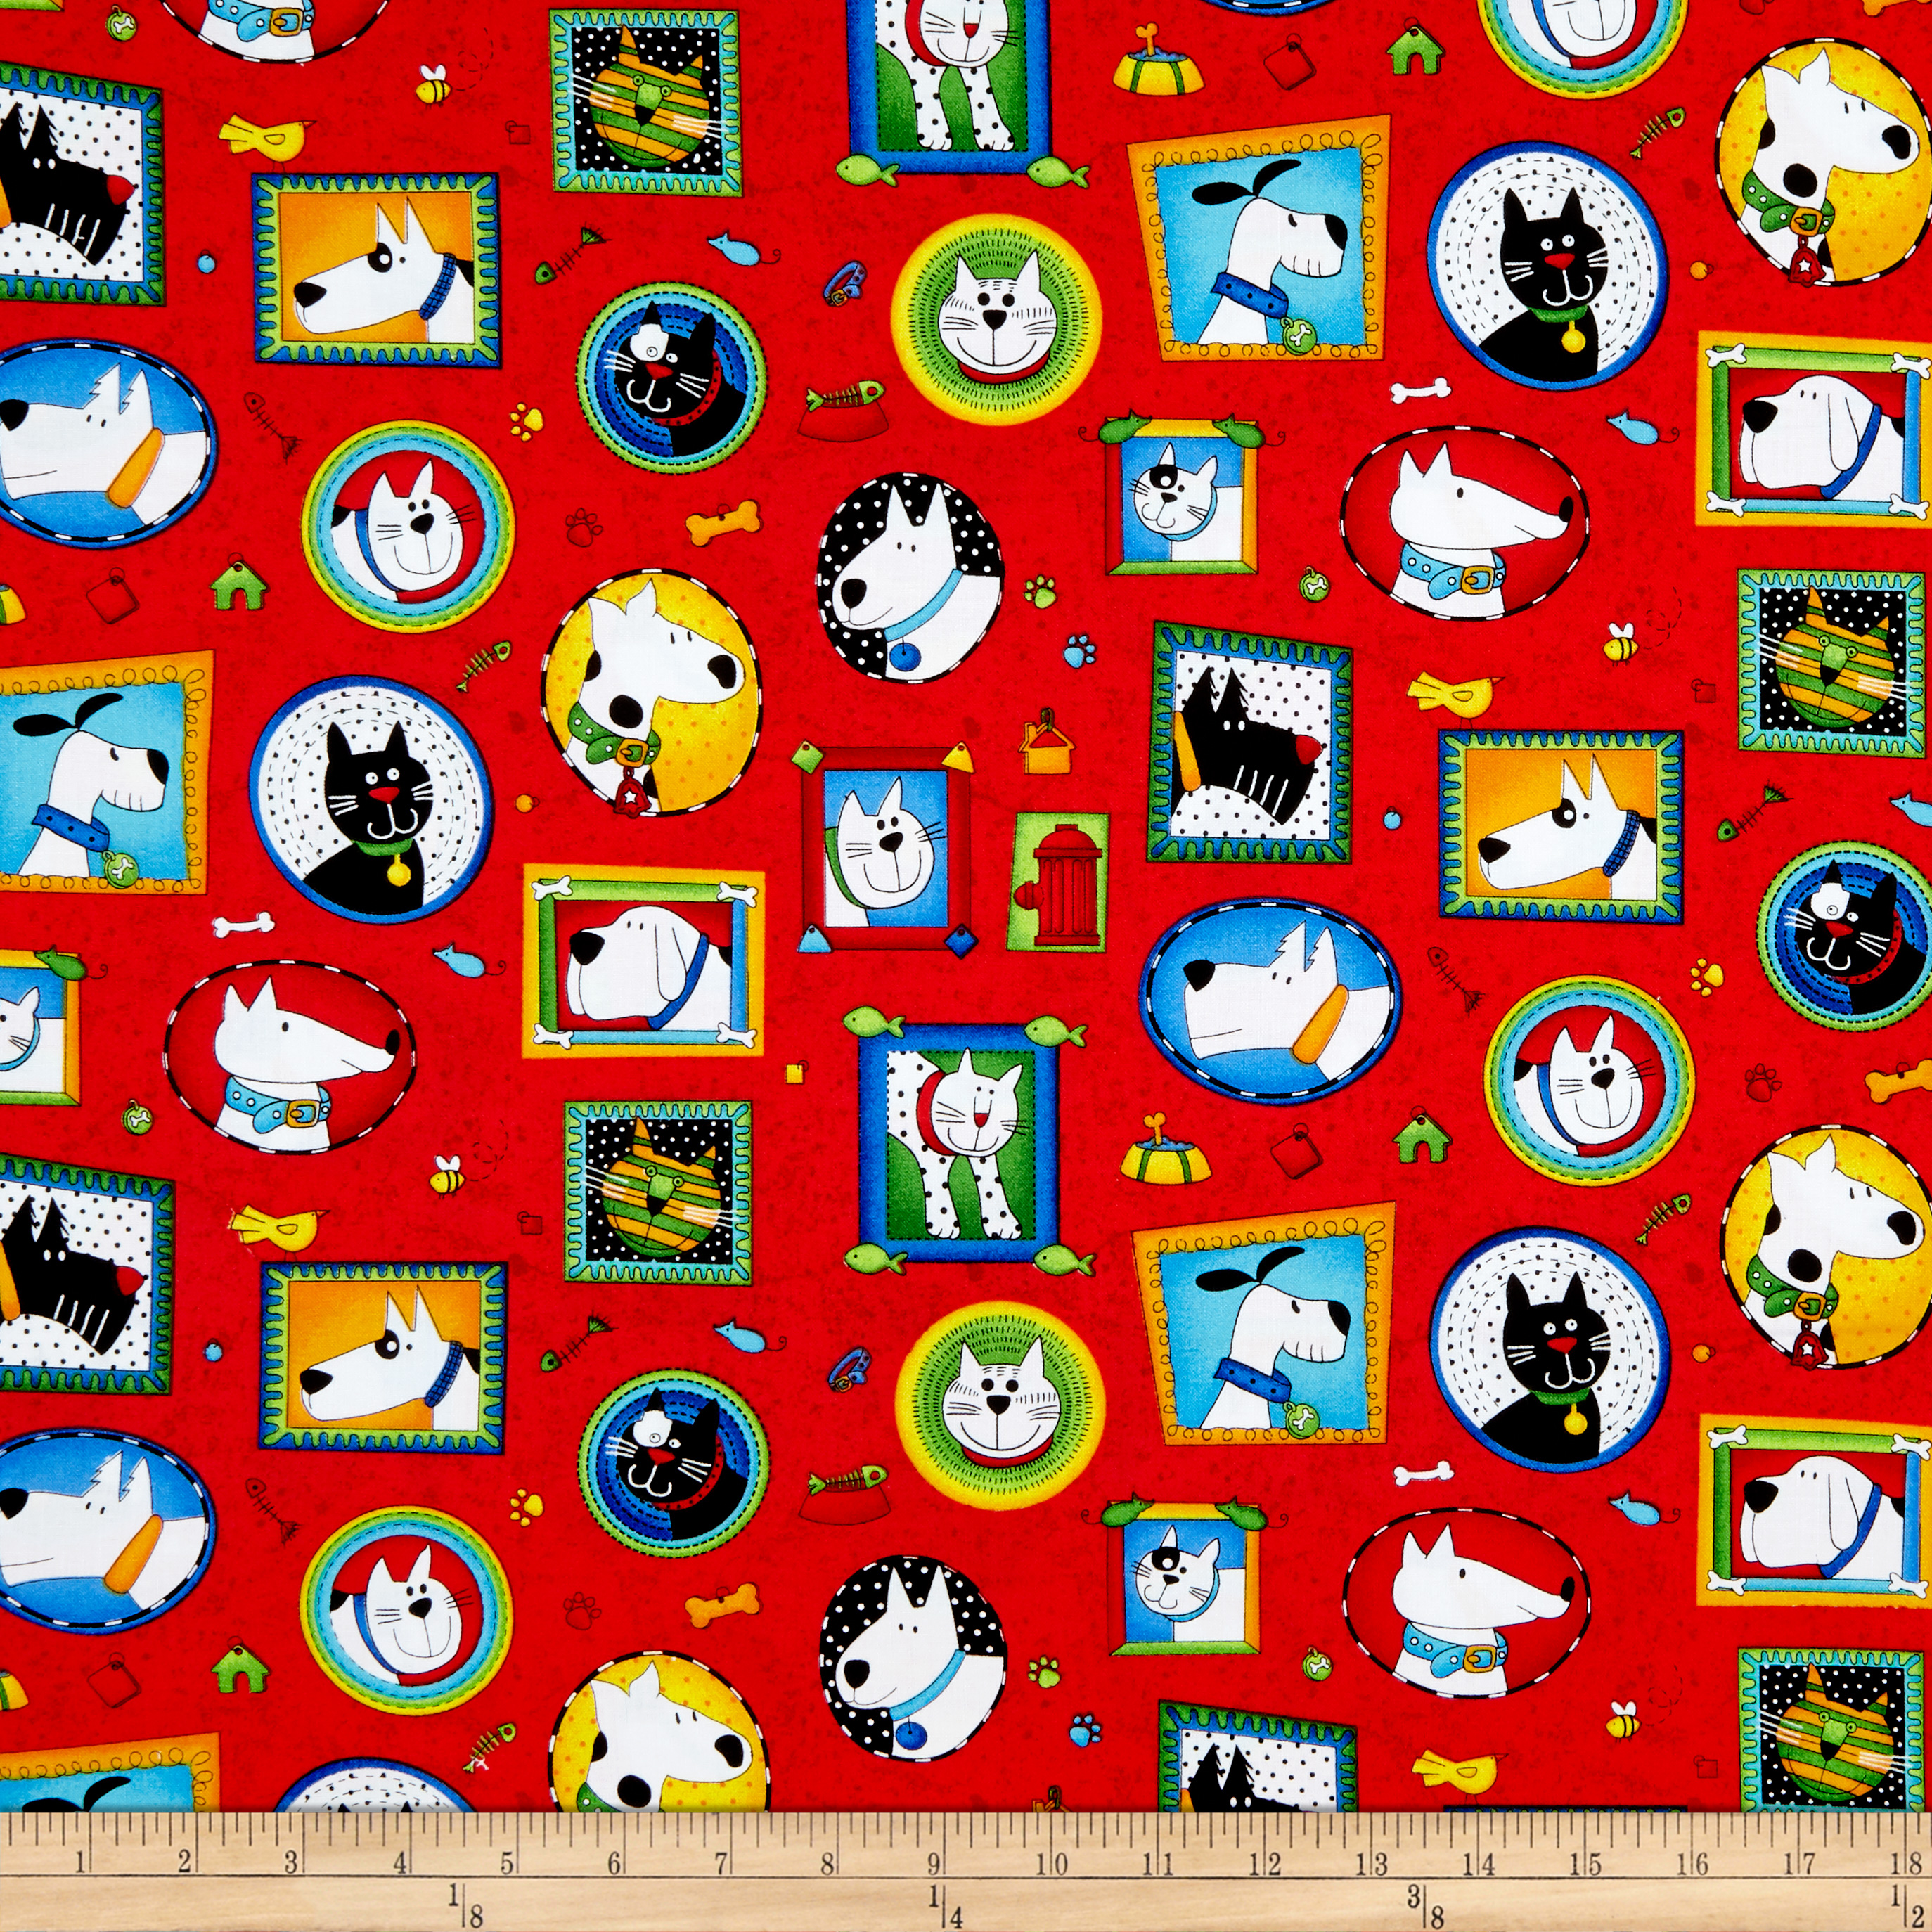 Epic Woof N' Whiskers Framed Pets Red Fabric